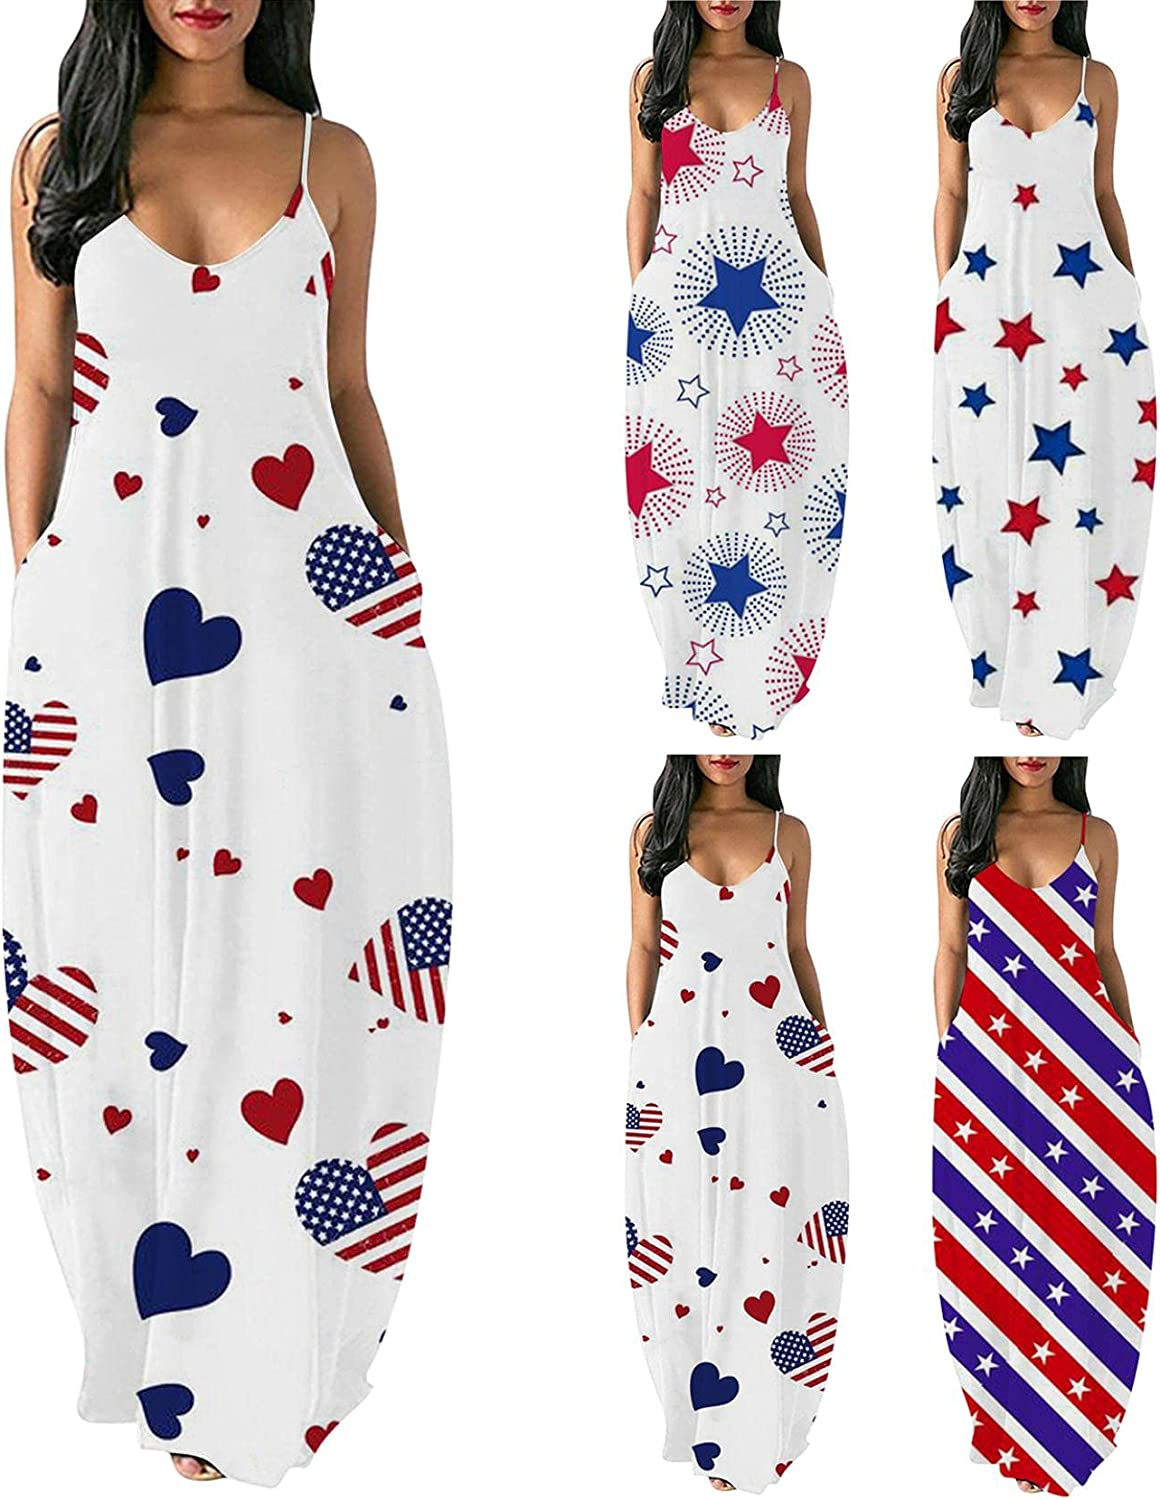 Formal Dresses for Women,Women's Solid Color V Neck Spaghetti Strap Long Maxi Dress Casual Summer Party Dress